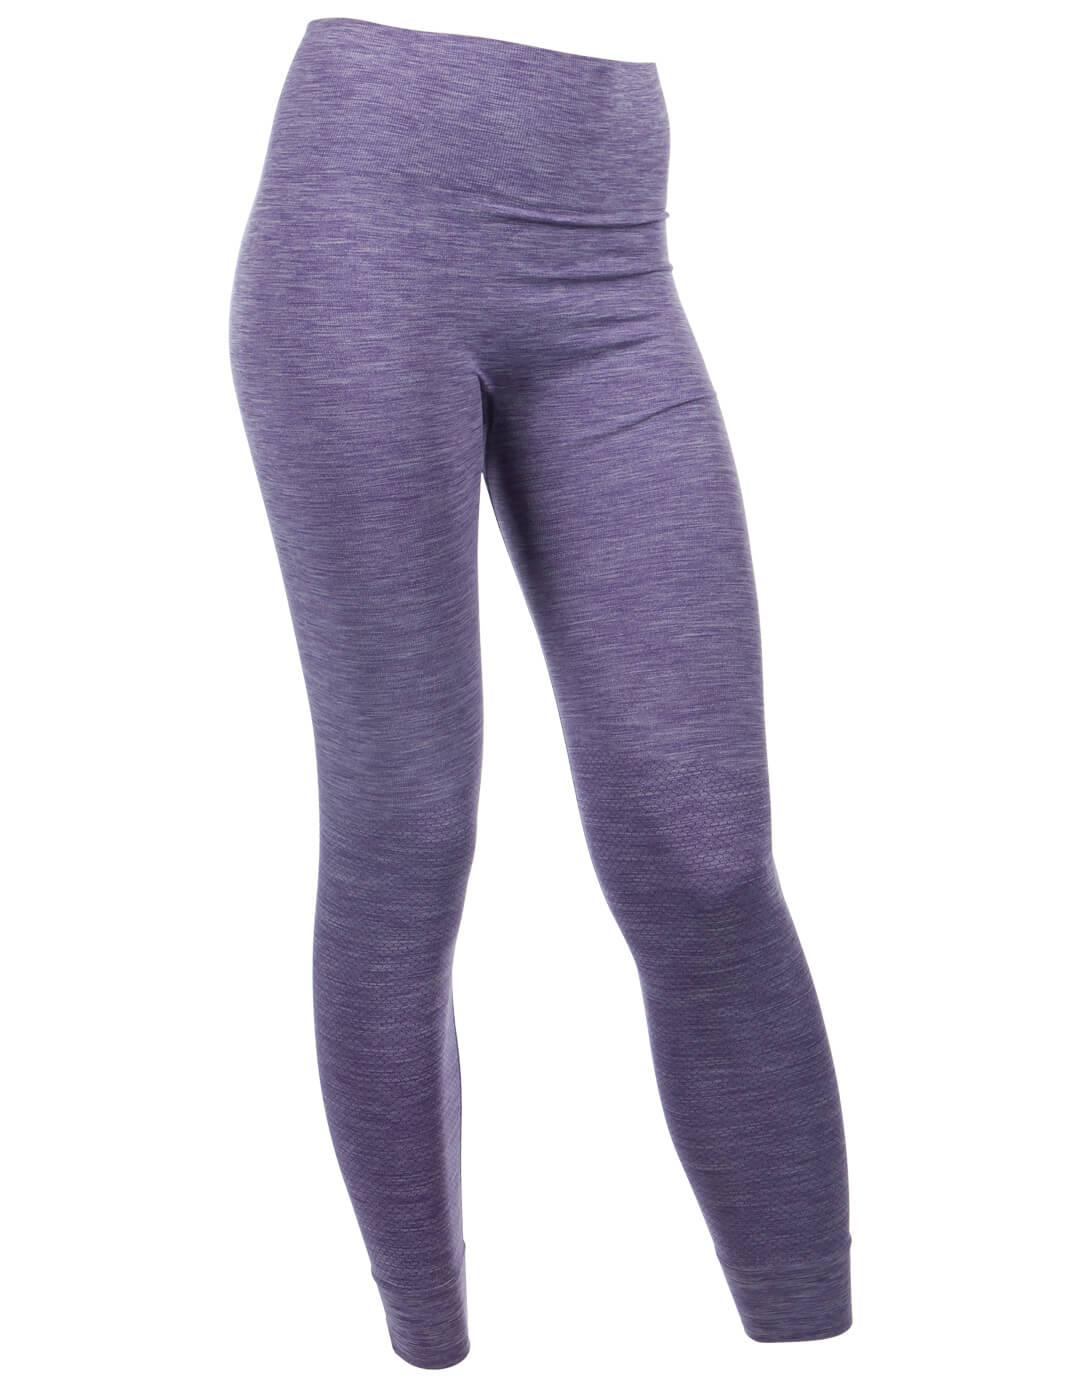 Run and Relax Bandha Tights - Rich Purple/White